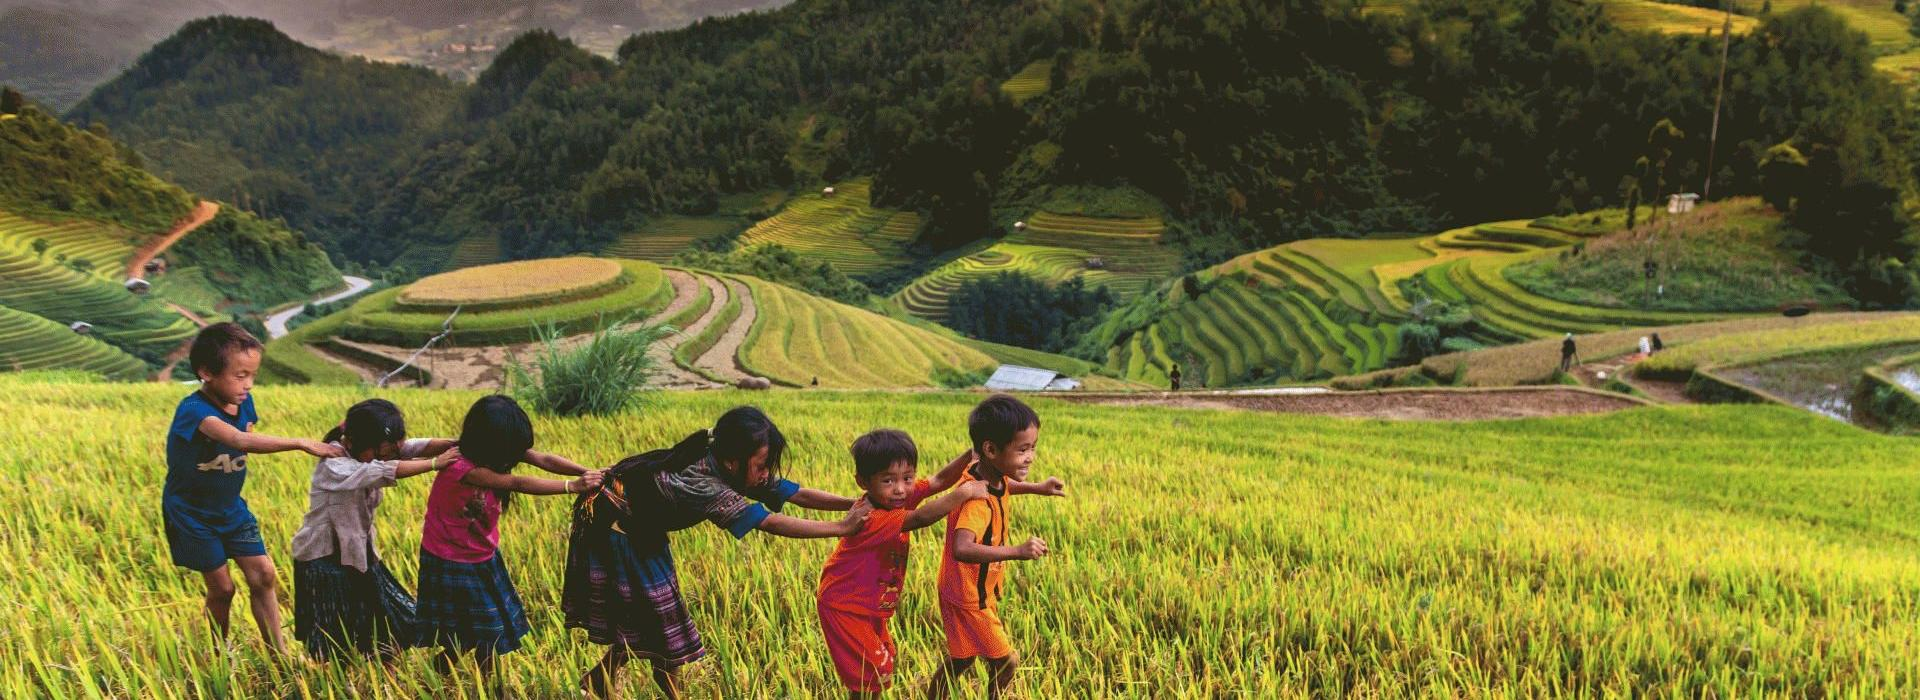 Sapa tours in September to October with stunning golden terraced fields